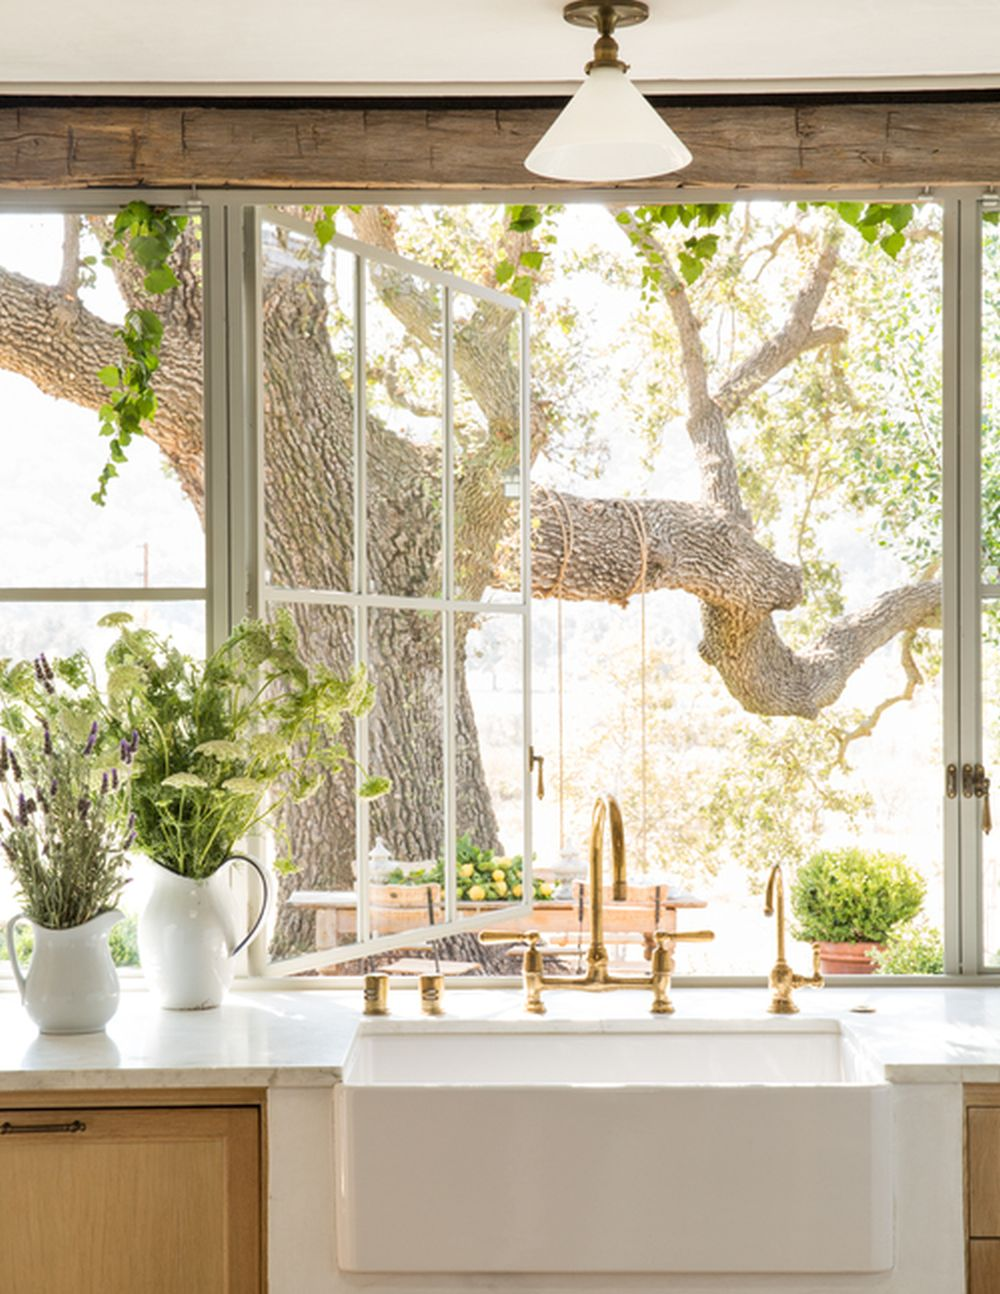 Kitchen sink and counter against large window looking out to green garden, wooden drawers, white frosted glass lighting fixtures